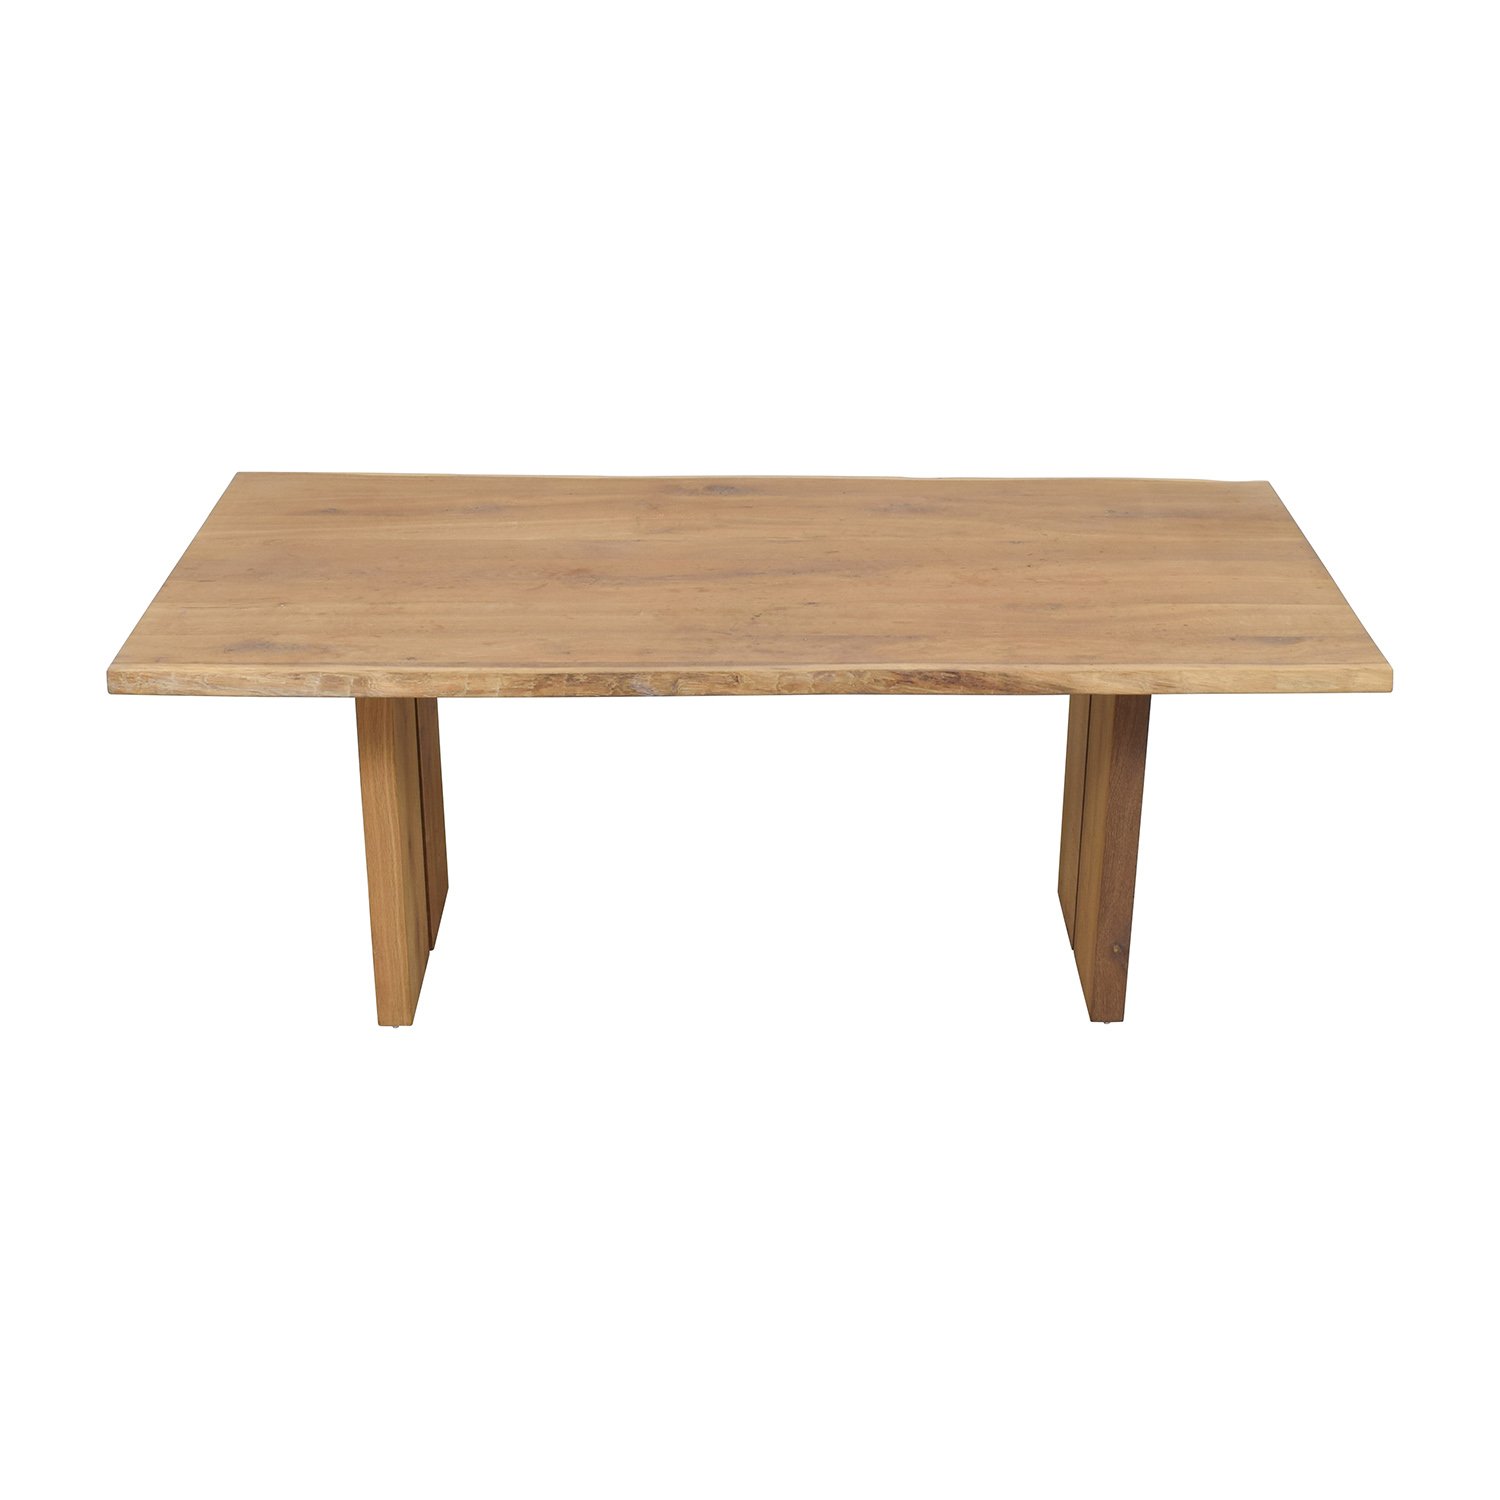 Modern Wood Plank Dining Table sale